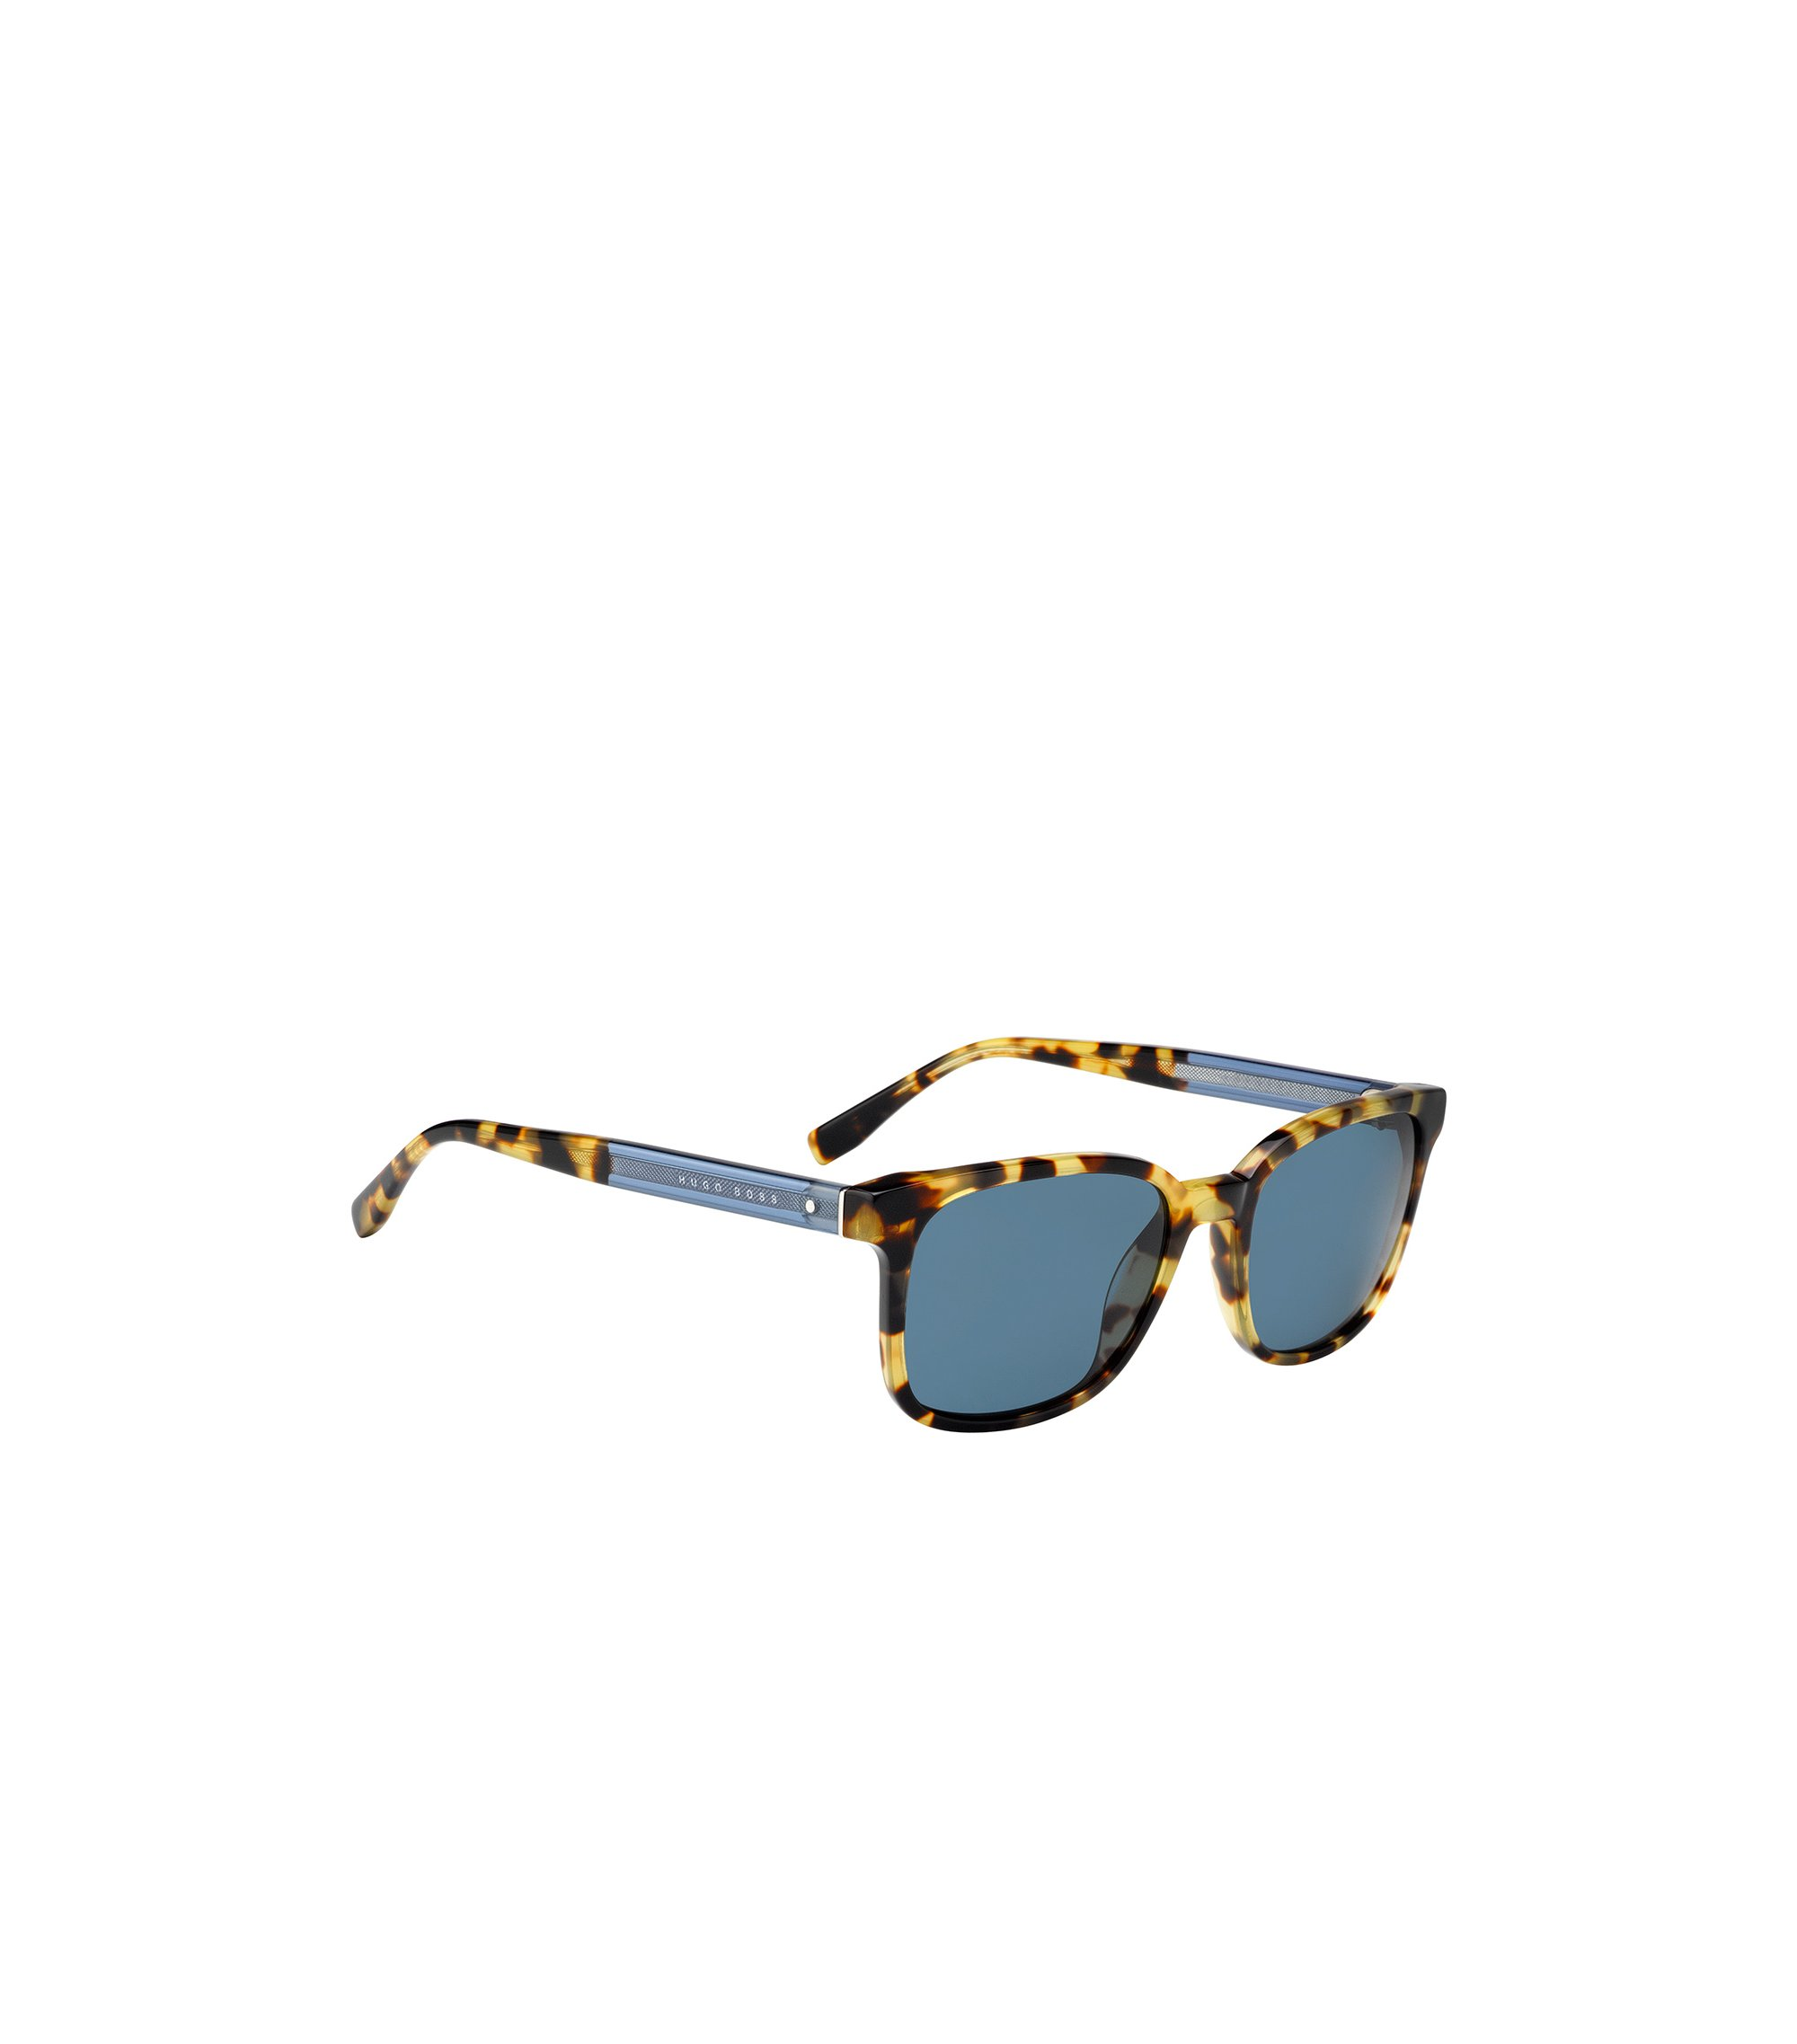 Blue Lens Square Sunglasses | BOSS 0802S, Assorted-Pre-Pack